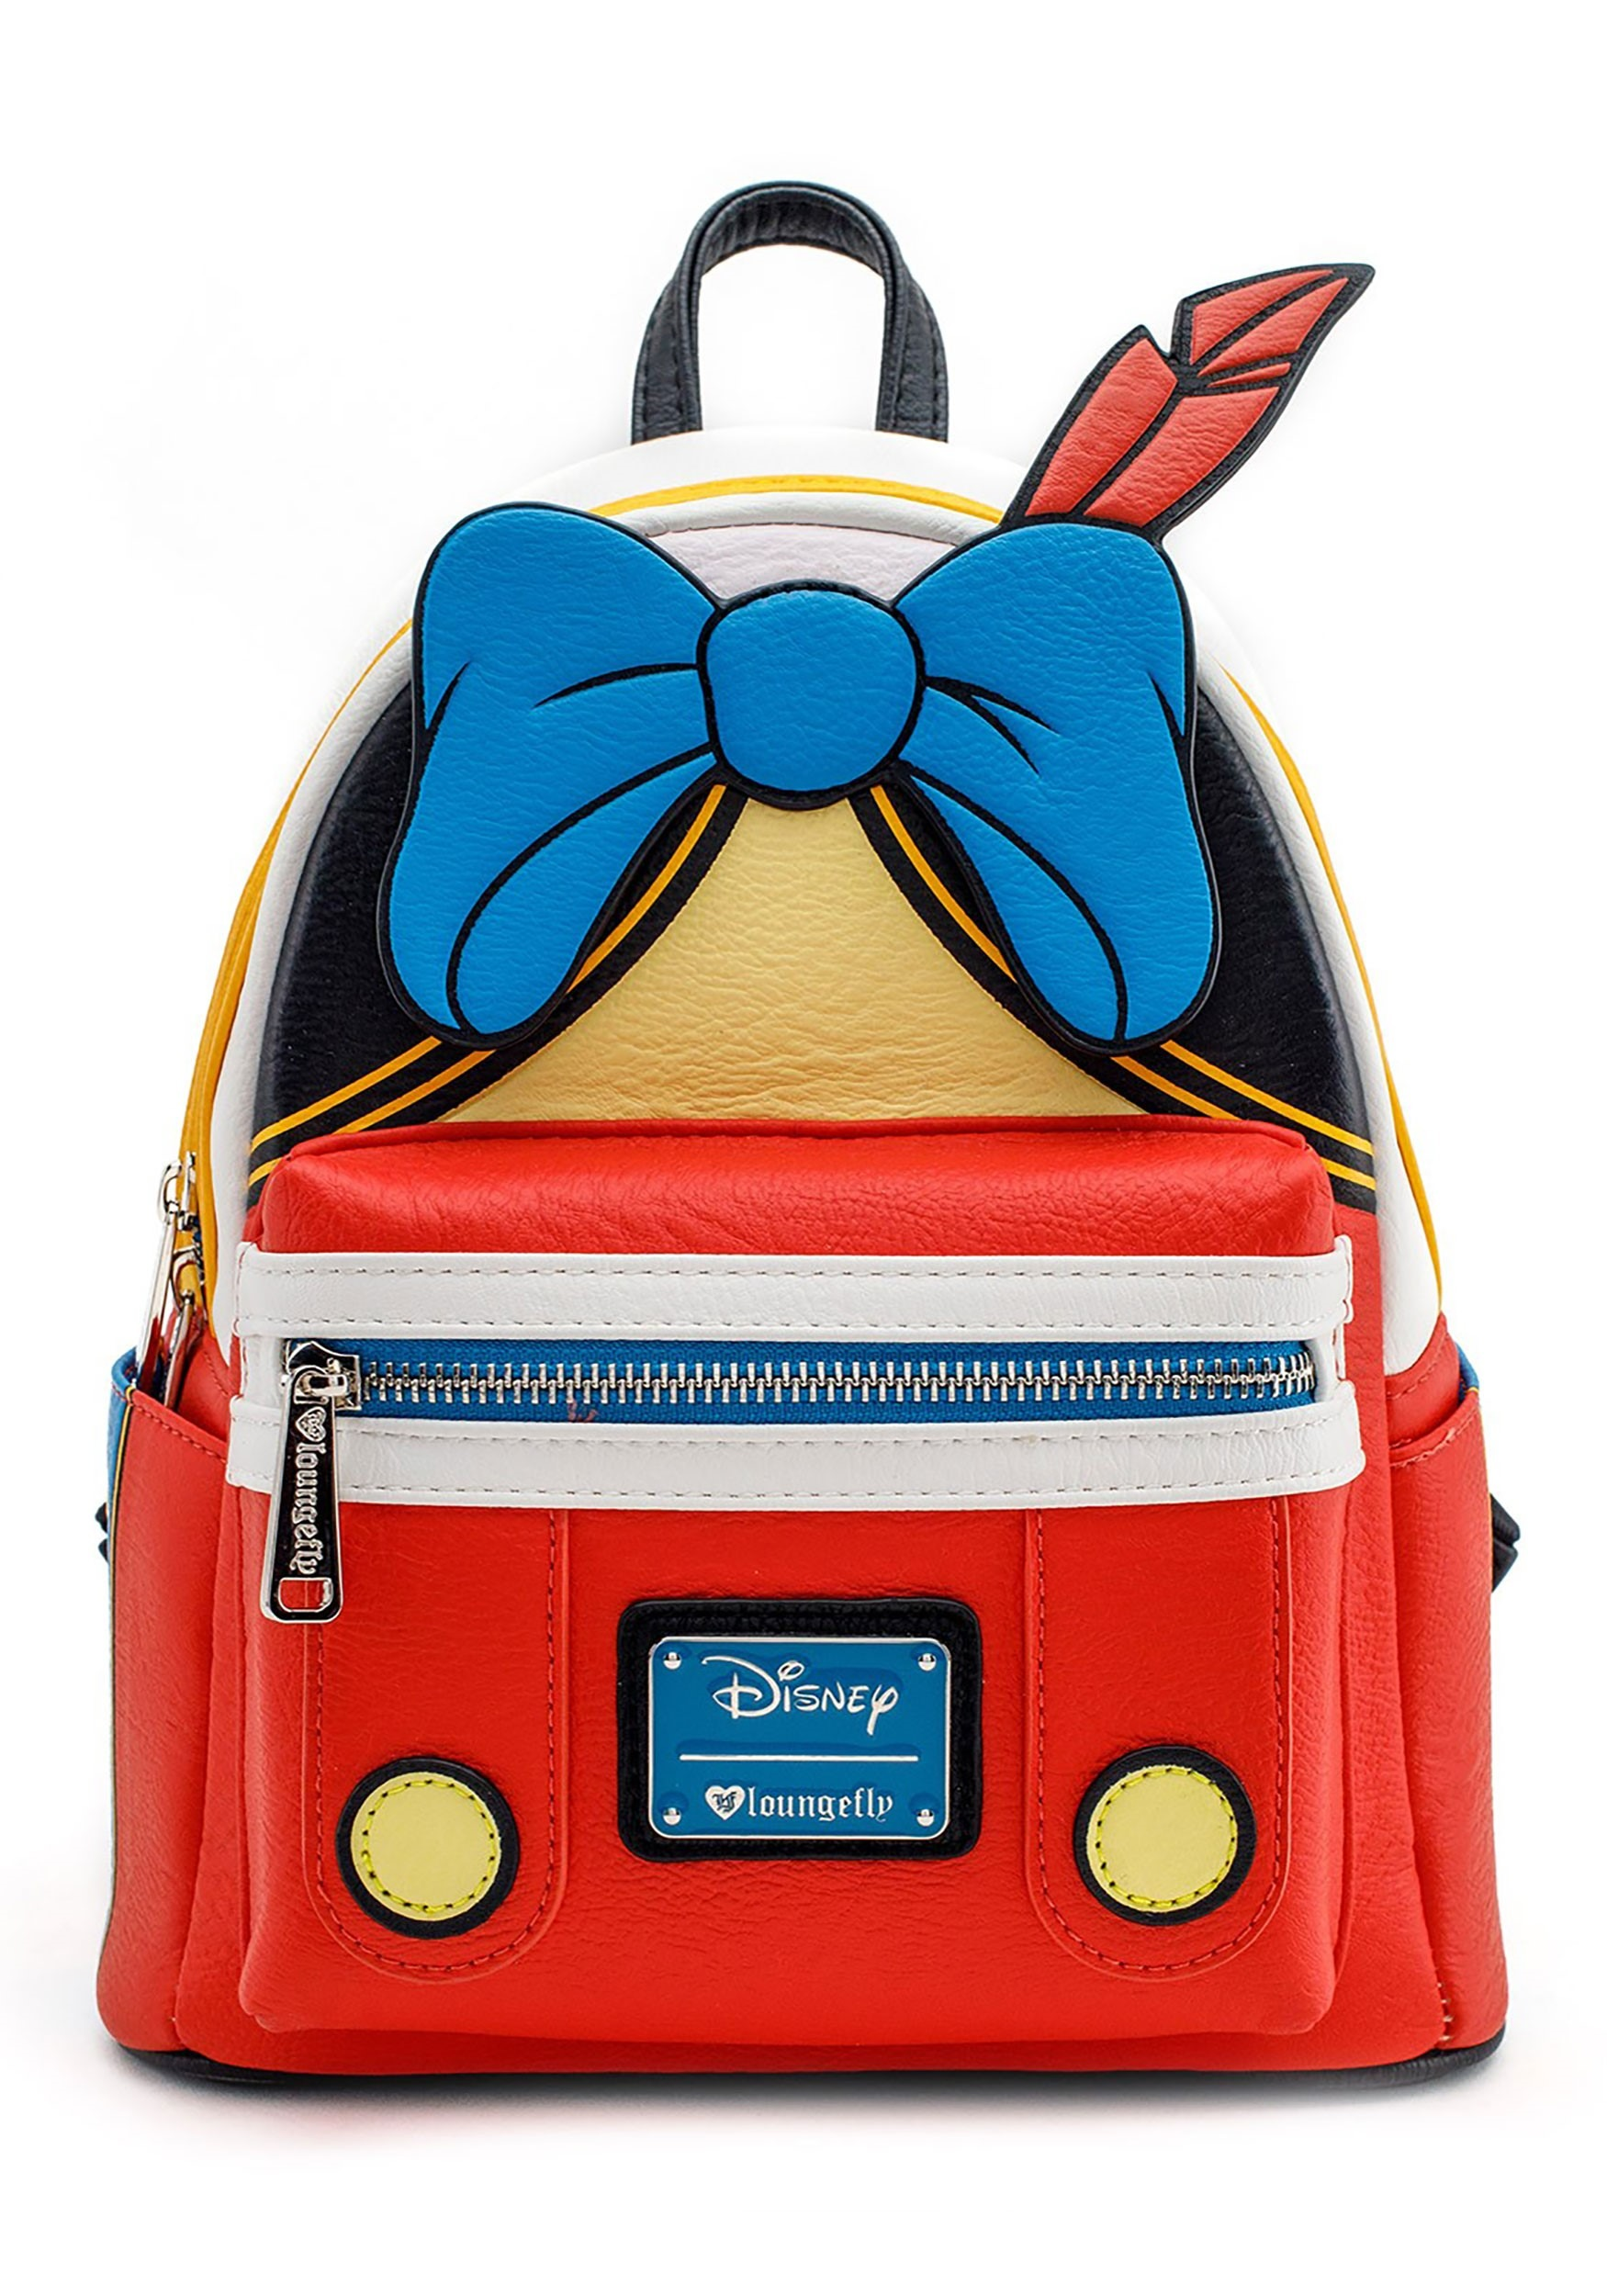 1e877c29083 Loungefly Disney Faux Leather Pinocchio Mini Backpack